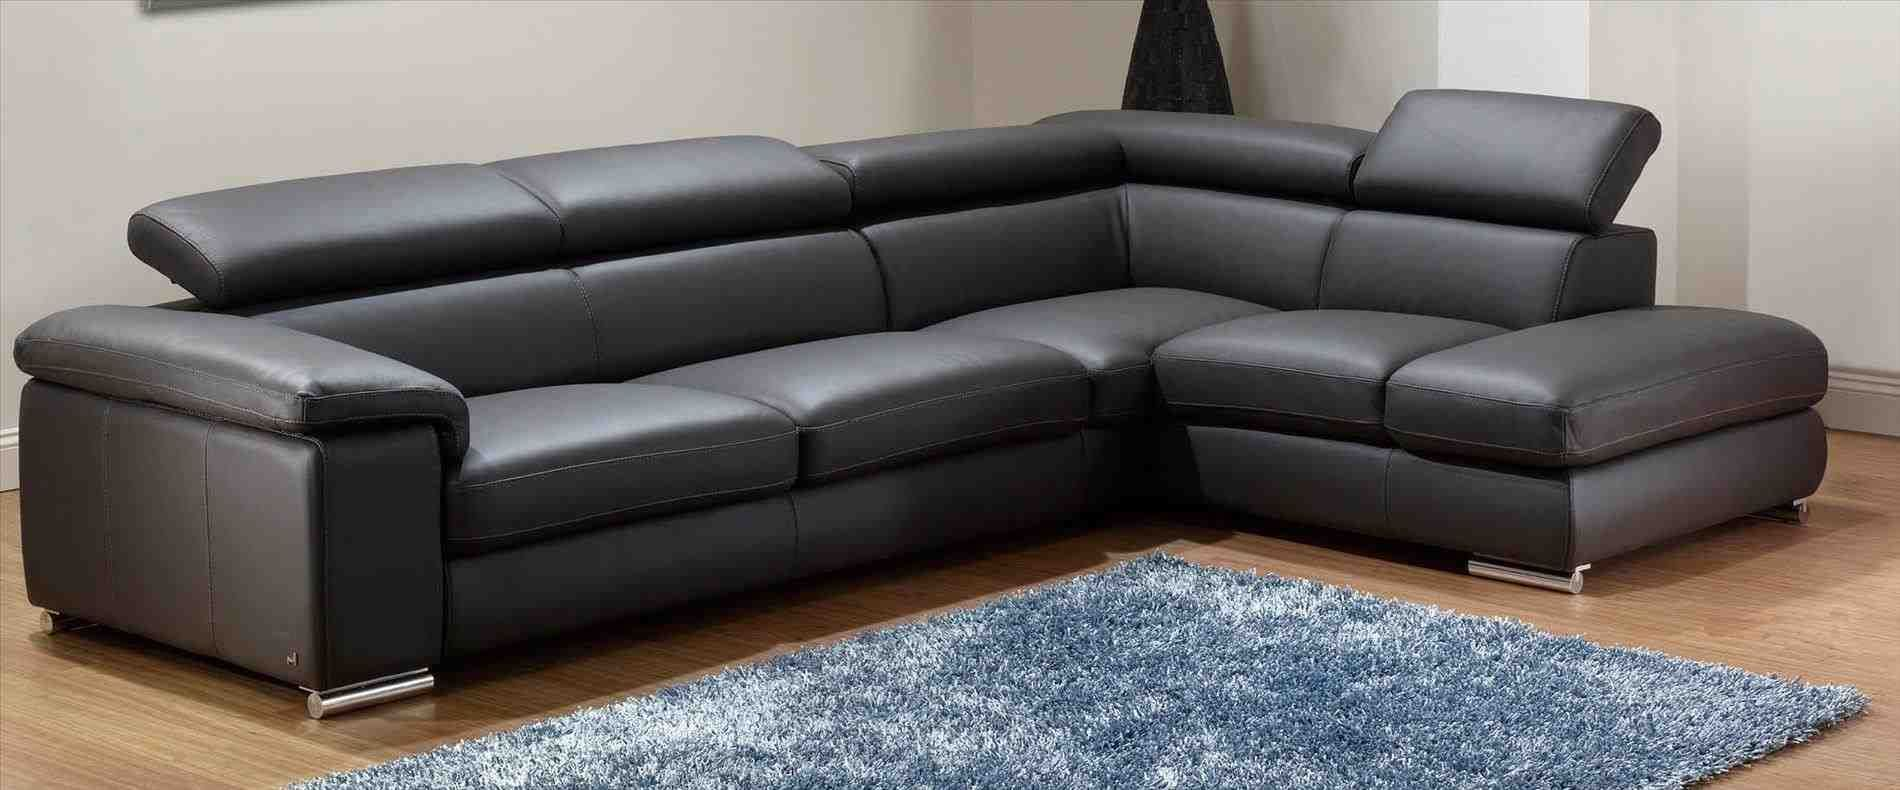 Best Cheap Leather Sofas For Sale Carolina Seater Leather 400 x 300